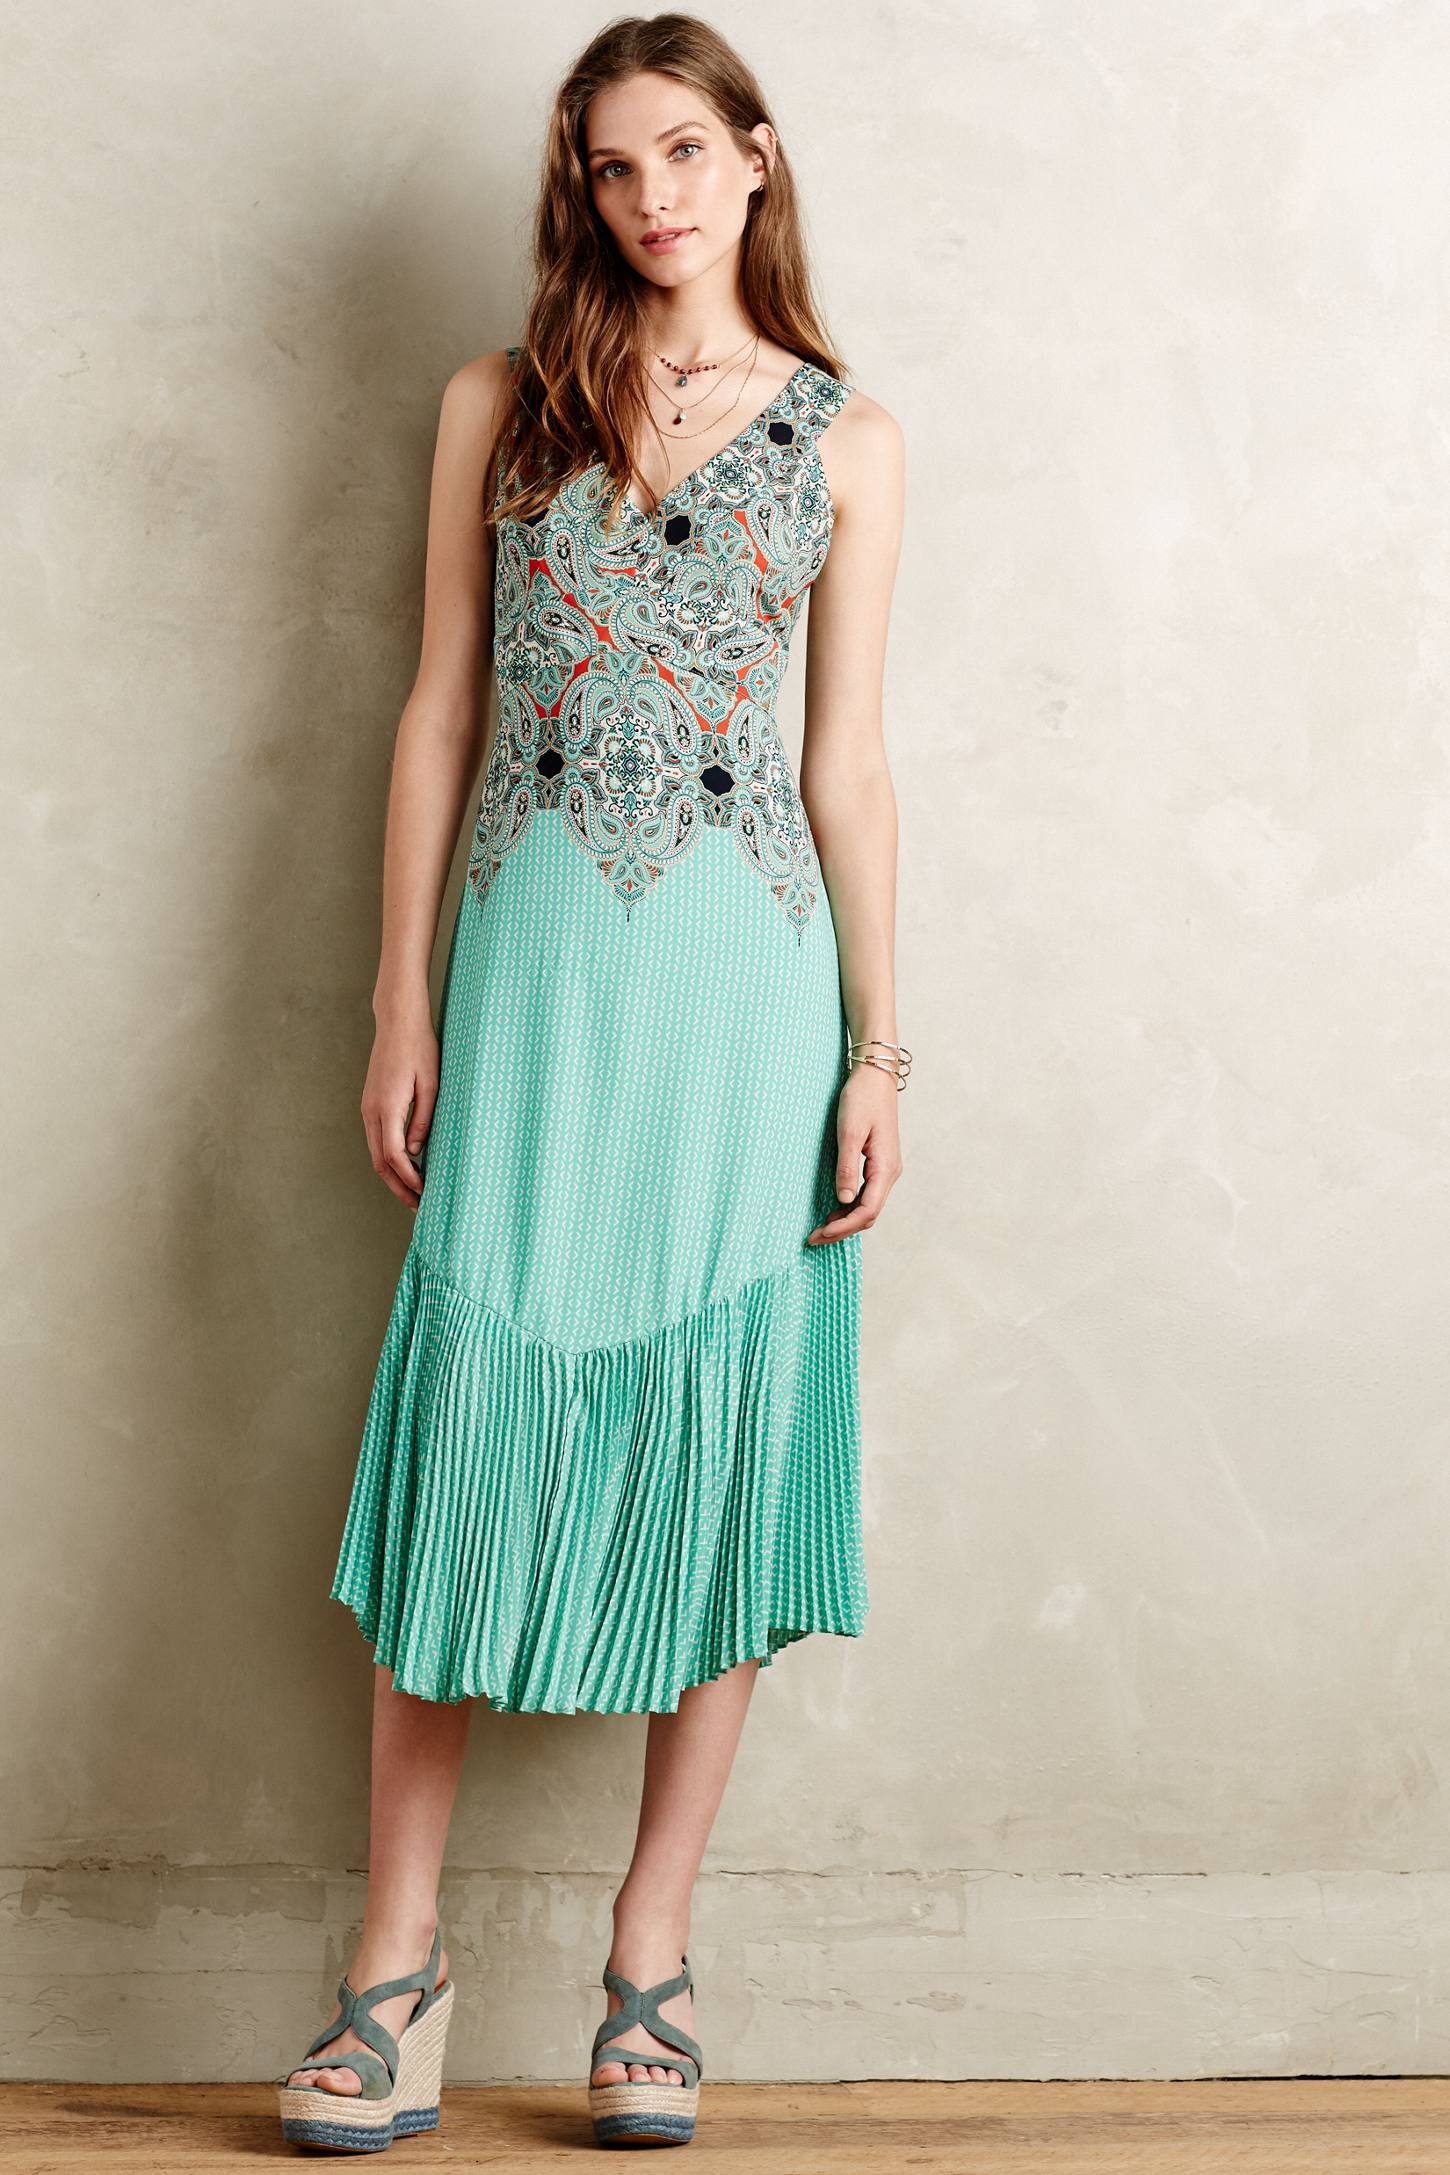 Lyst - Maeve Canyon Creek Dress in Green